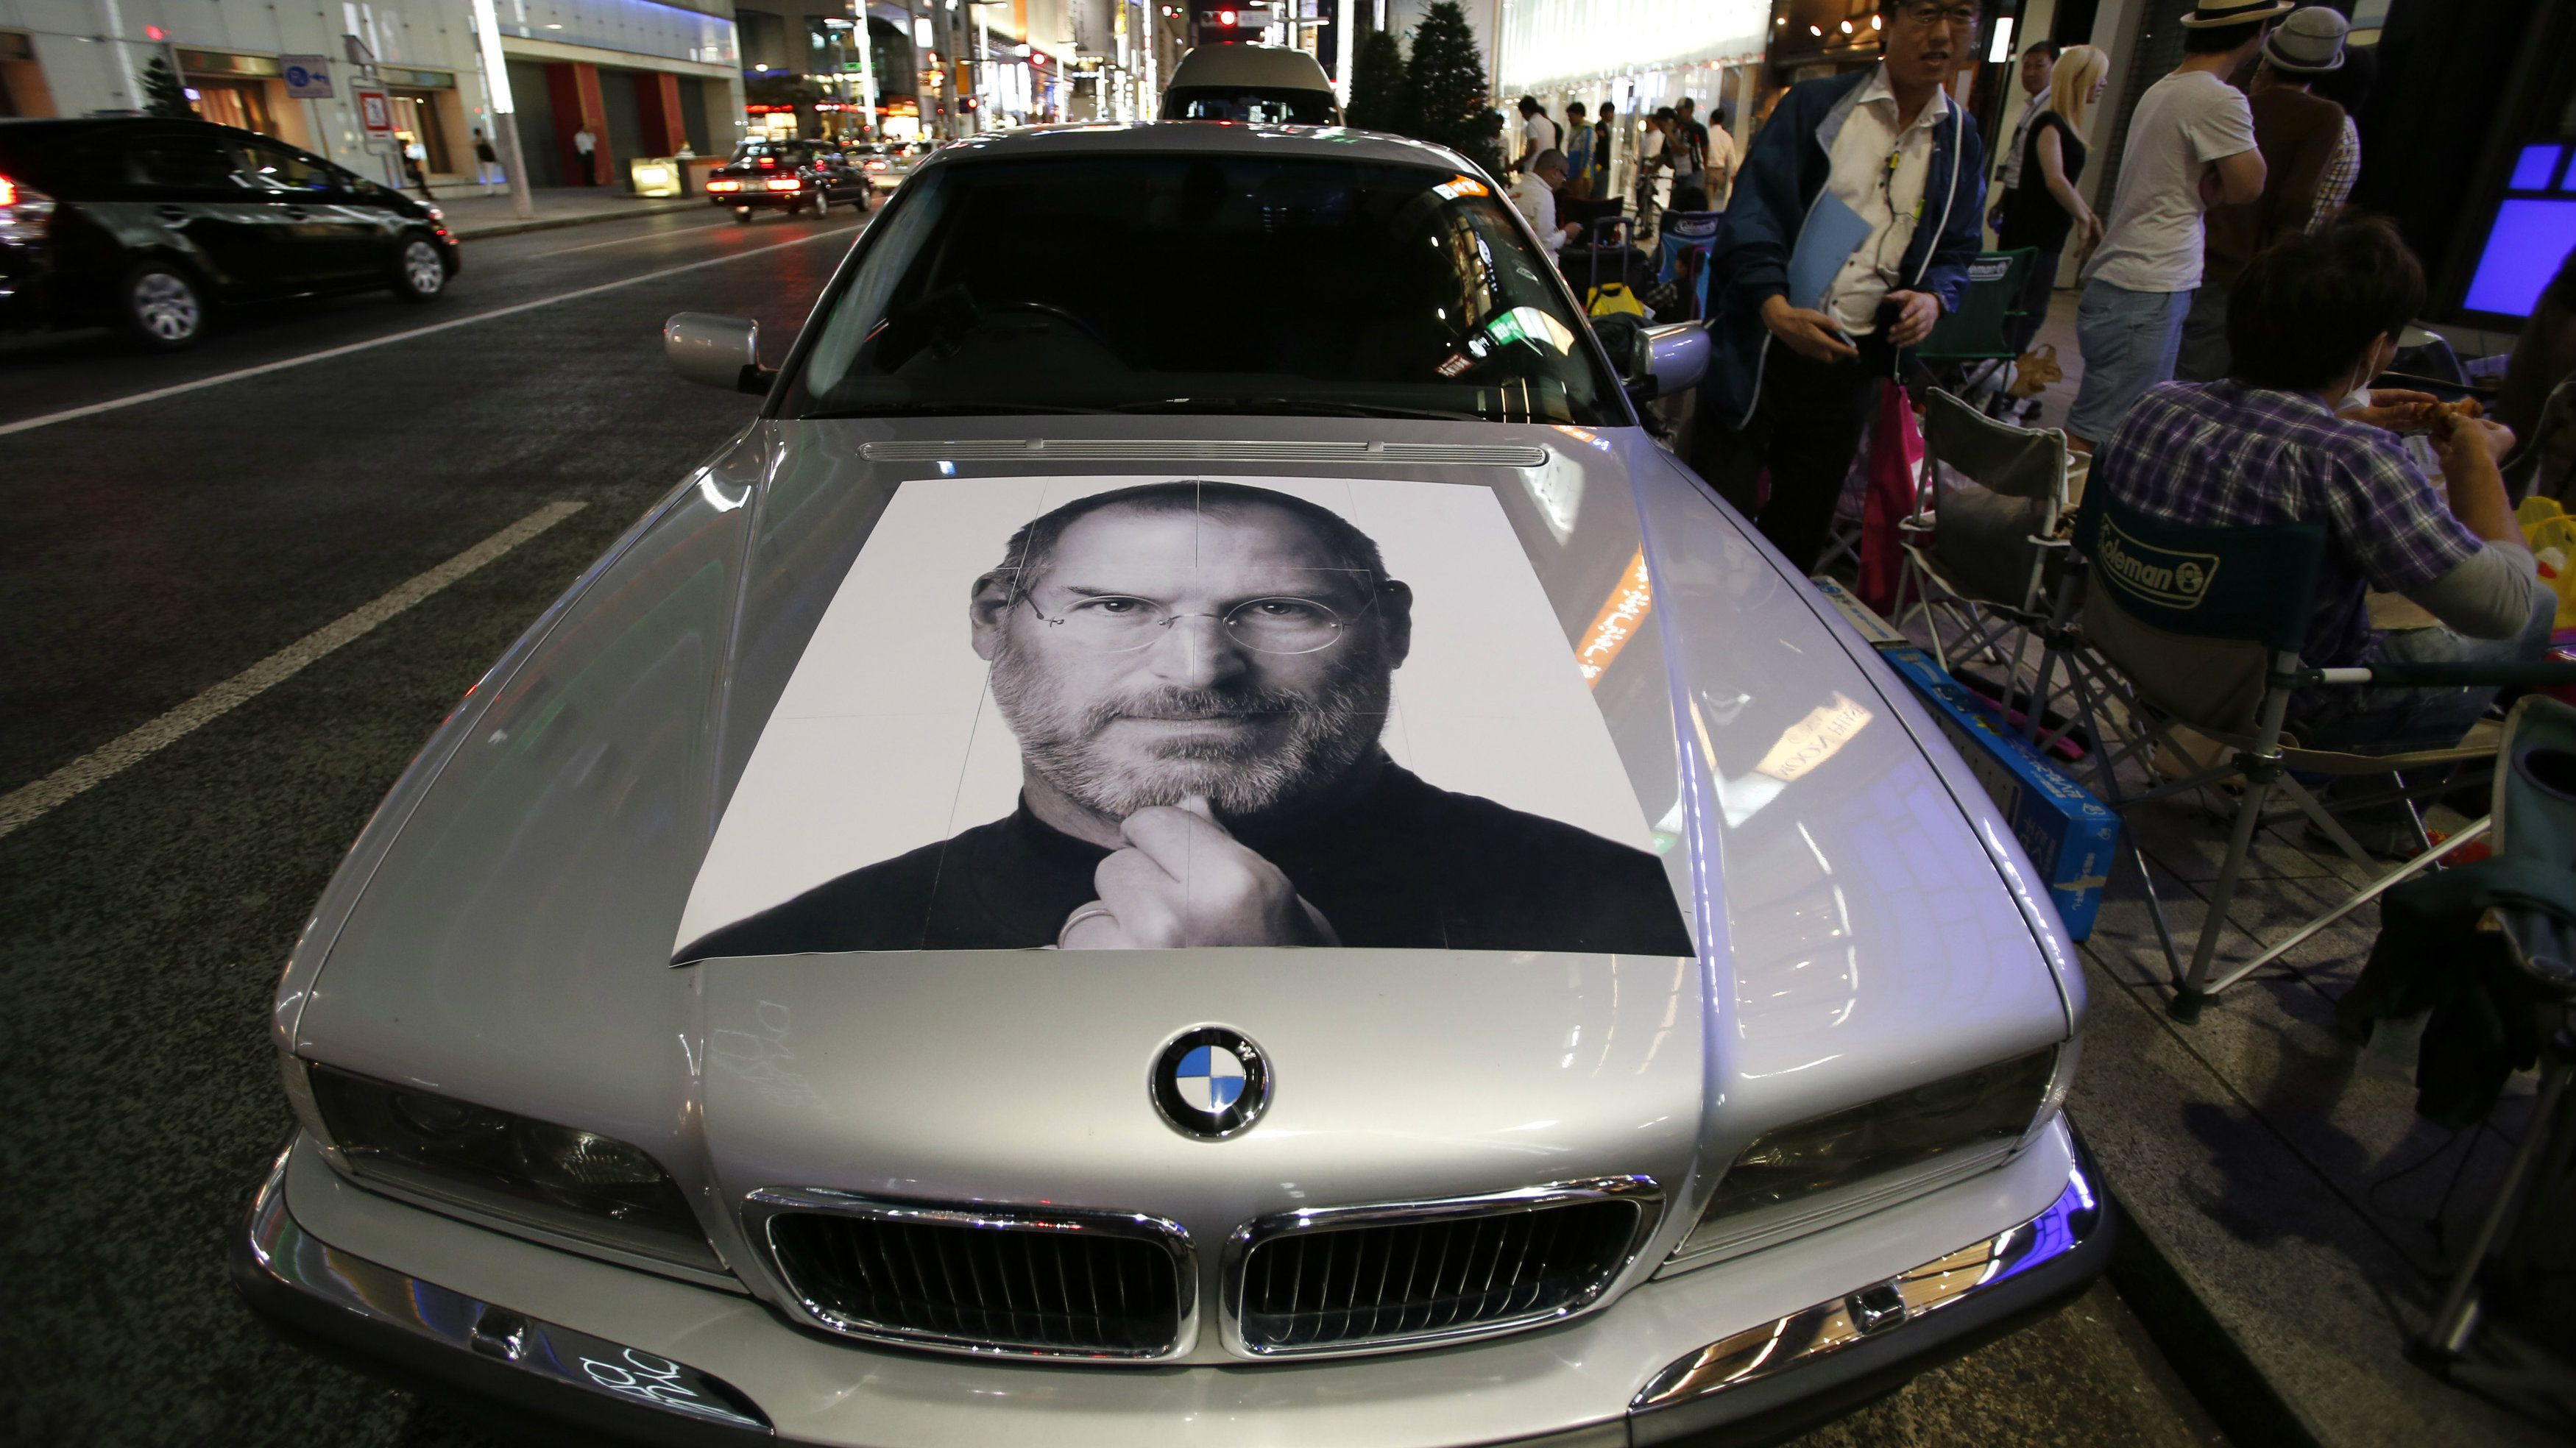 A portrait of Apple's co-founder Steve Jobs is seen on a BMW car as people wait for the release of Apple's new iPhone 5S and 5C, near the Apple Store at Tokyo's Ginza shopping district September 19, 2013, a day before the phones go on sale.